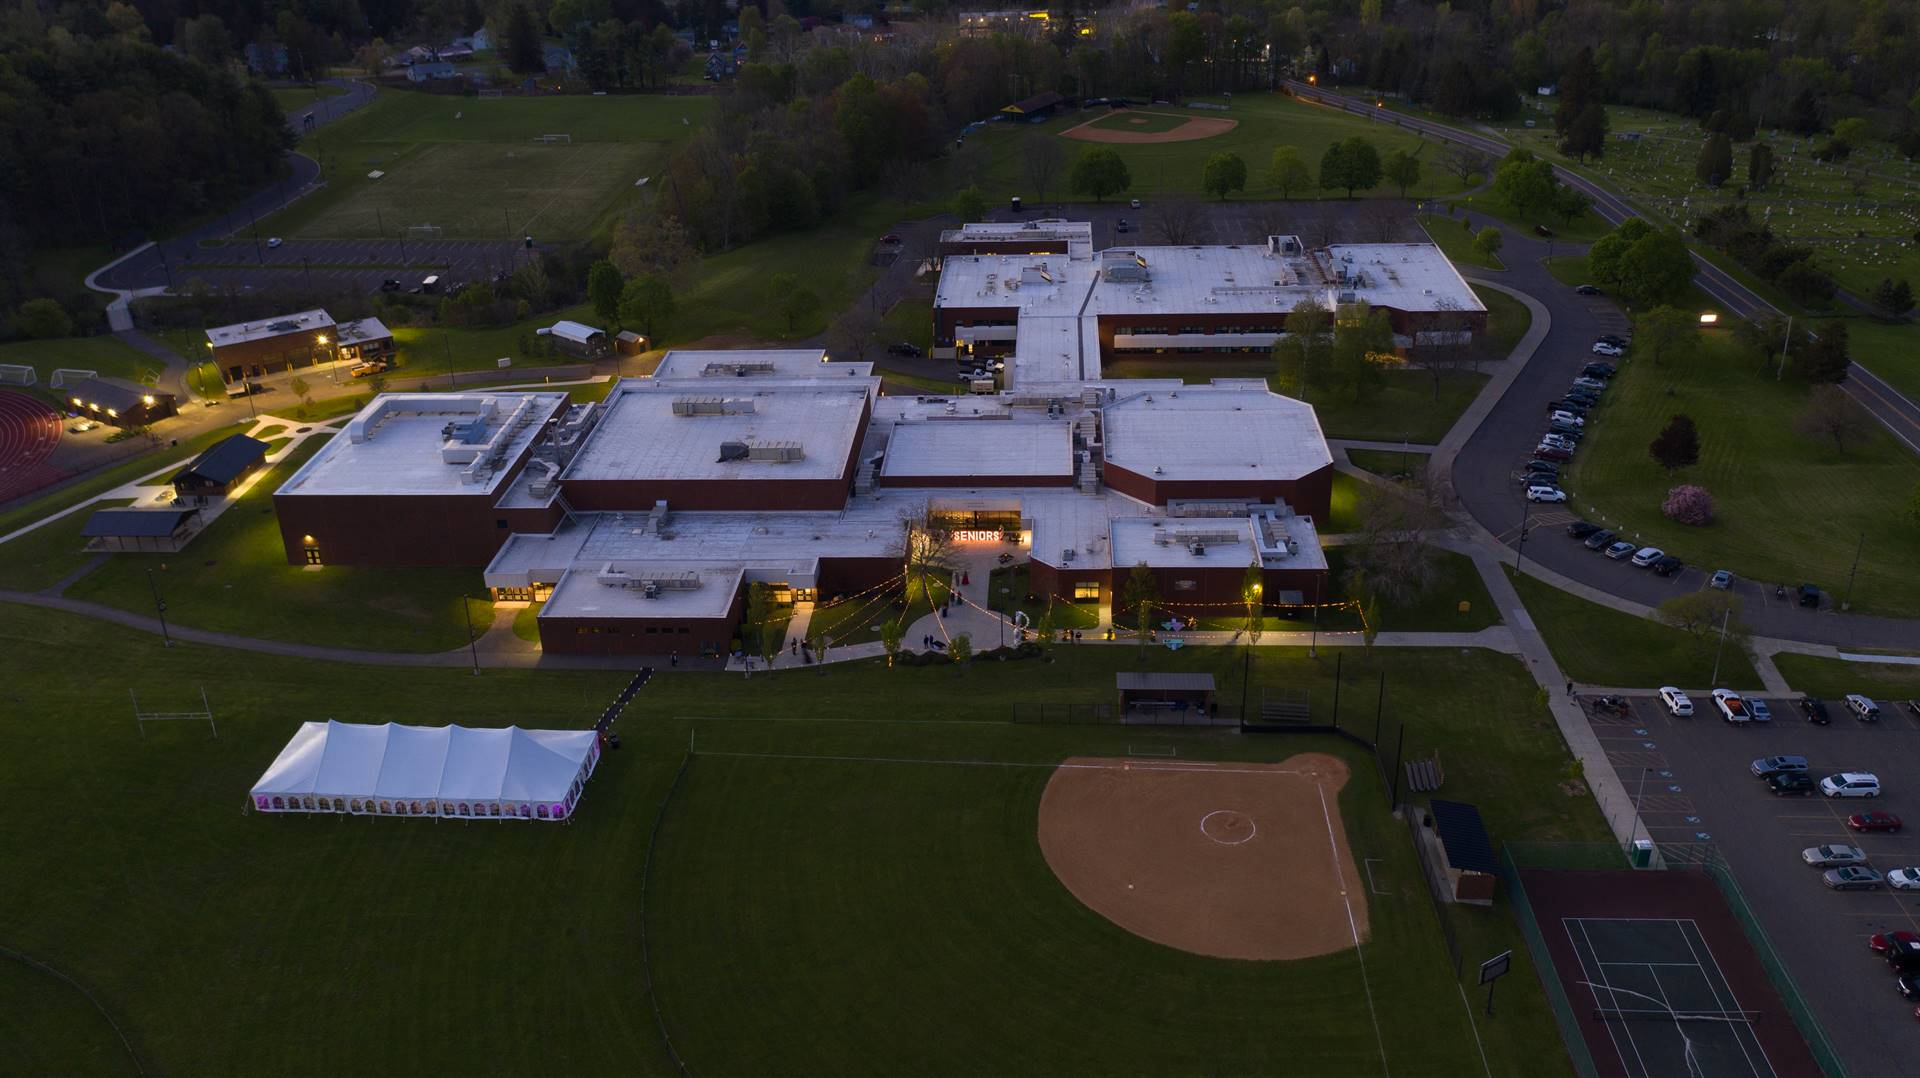 Arial view of WCHS building and tent on field